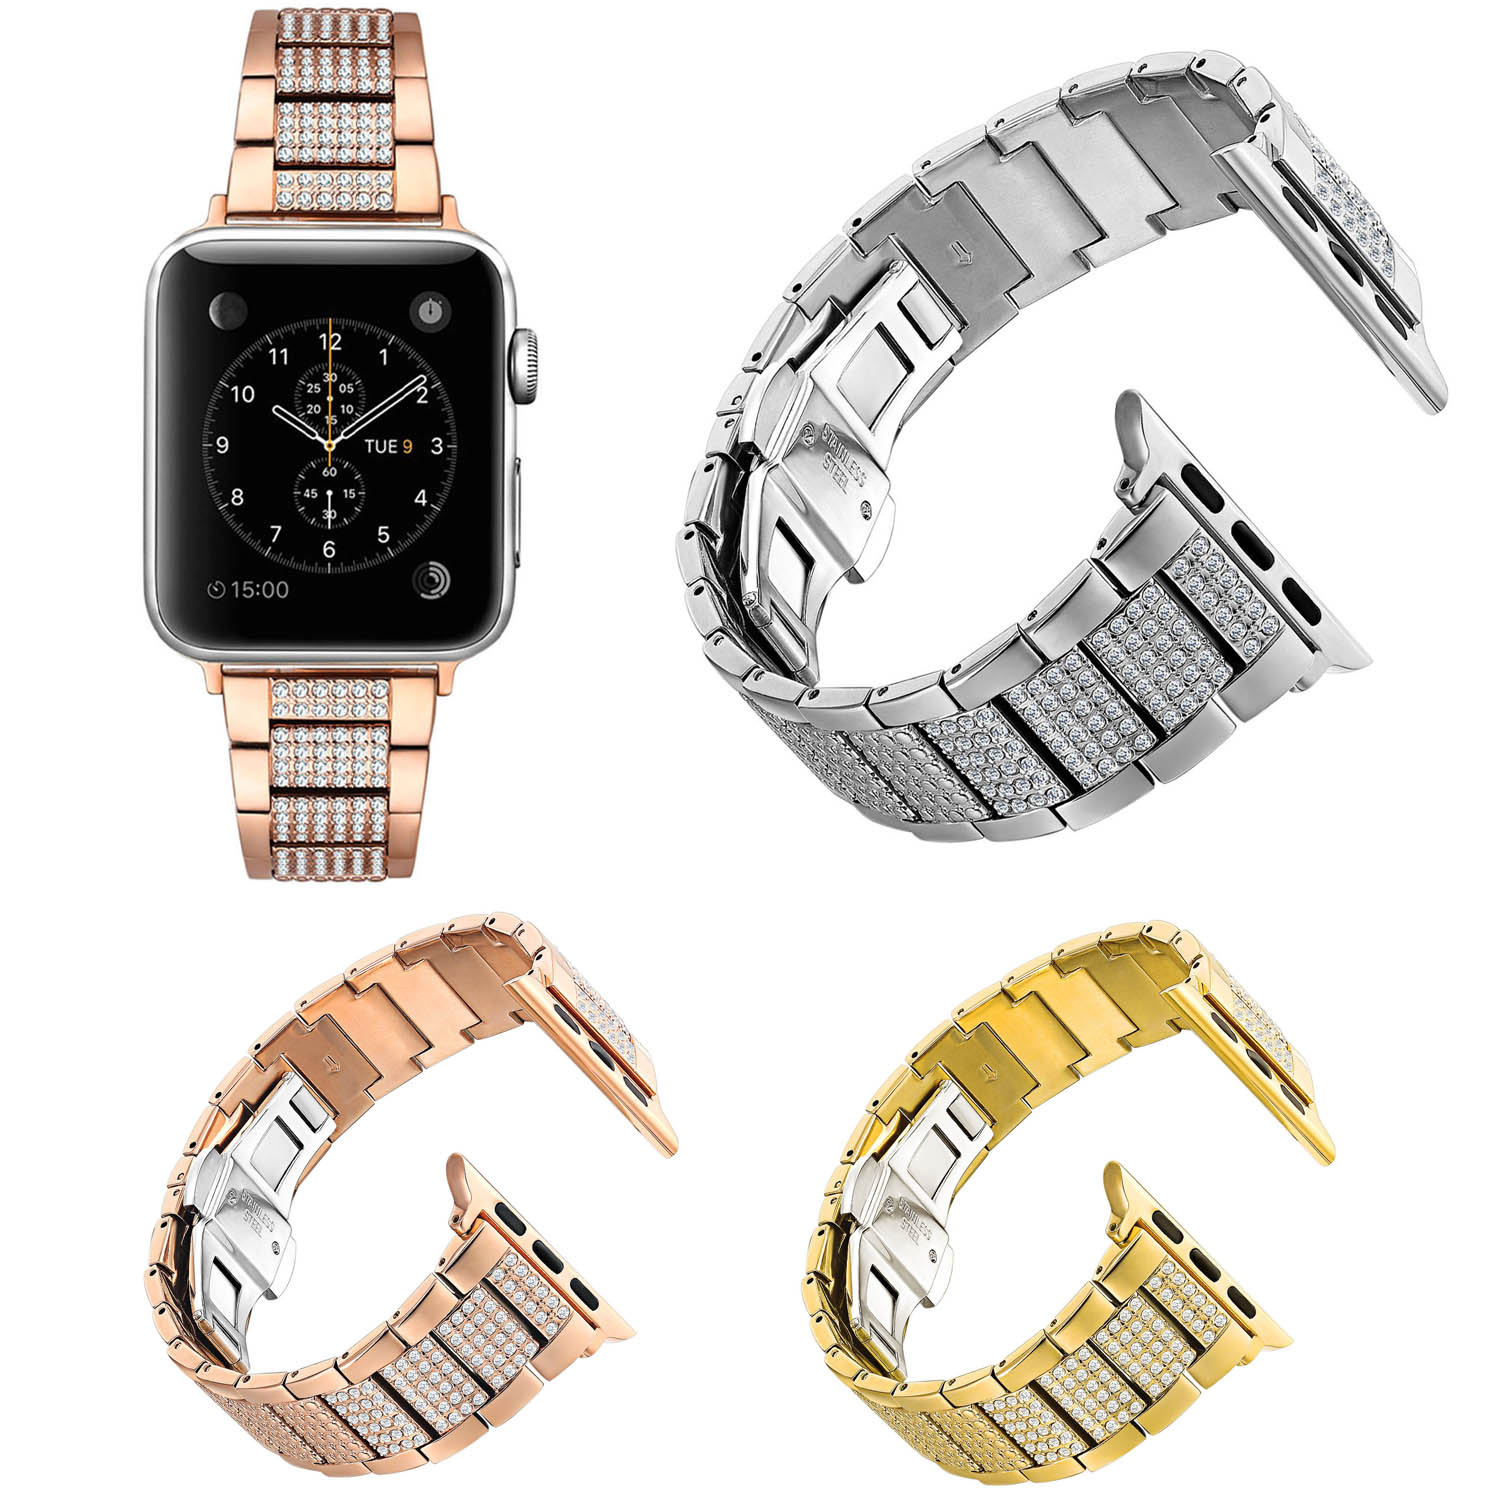 Women's Bling Links Bracelet for Apple Watch Series 3 2 1 Band Rhinestone Crystal Stainless Steel Strap for iWatch 42/38mm Belt dahase bling rhinestone link bracelet for apple watch band stainless steel strap for iwatch 38mm 42mm series 1 2 3 belt